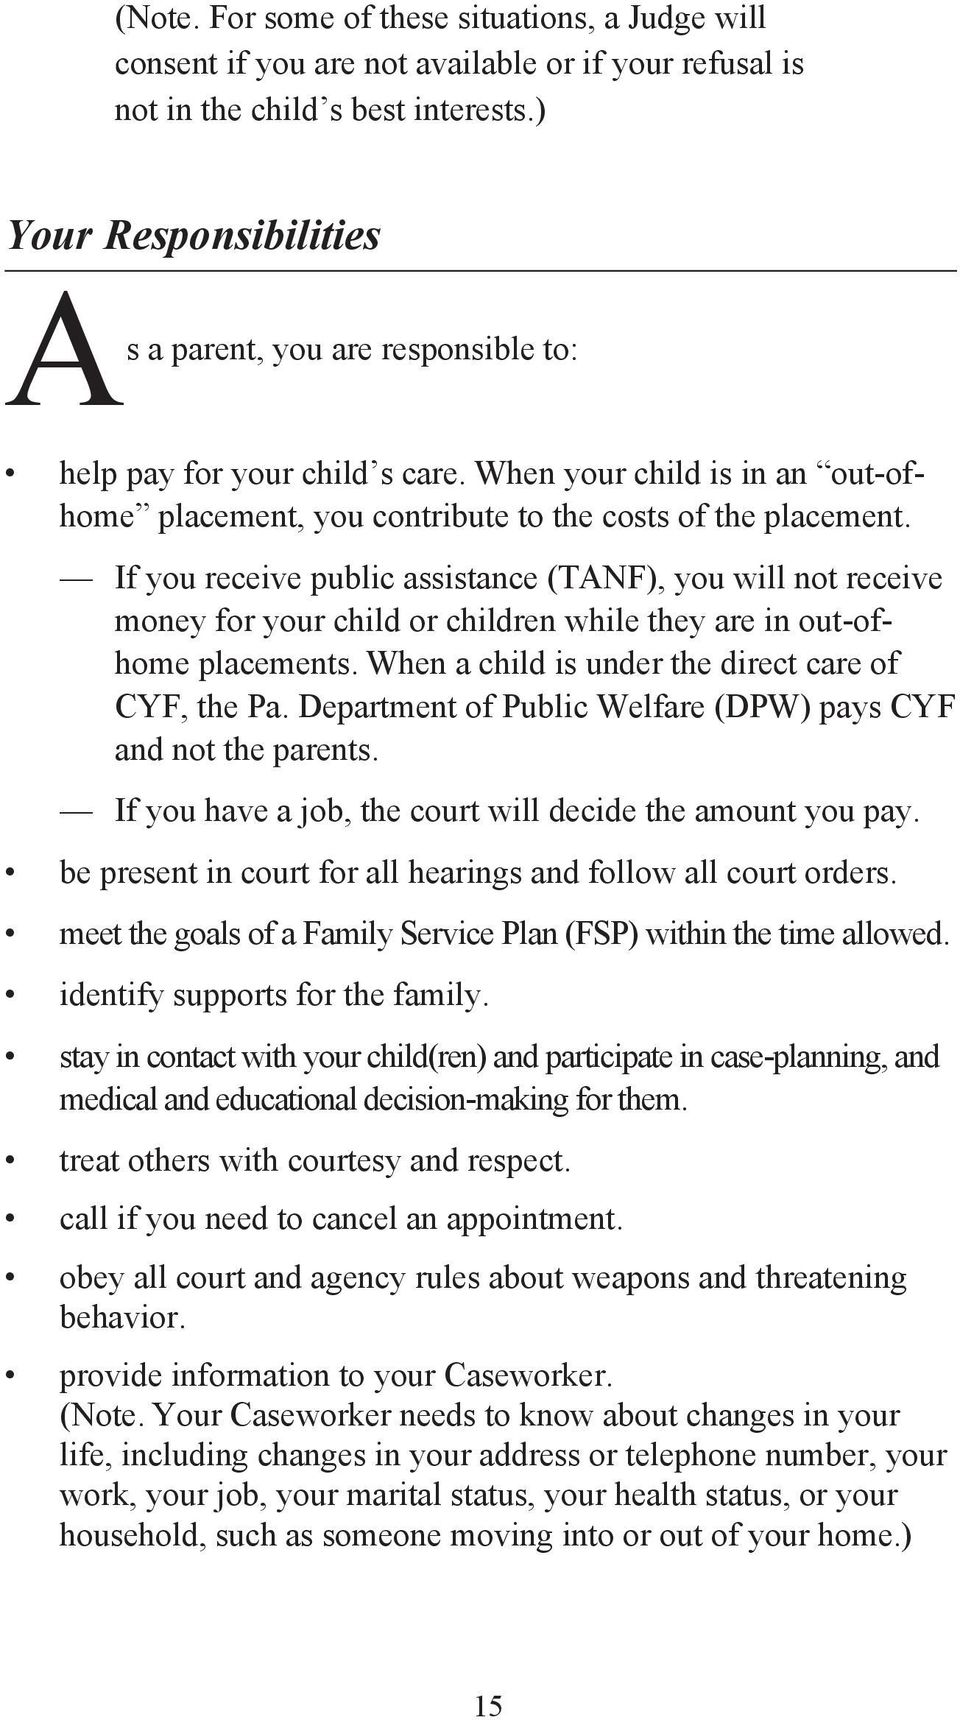 If you receive public assistance (TANF), you will not receive money for your child or children while they are in out-ofhome placements. When a child is under the direct care of CYF, the Pa.